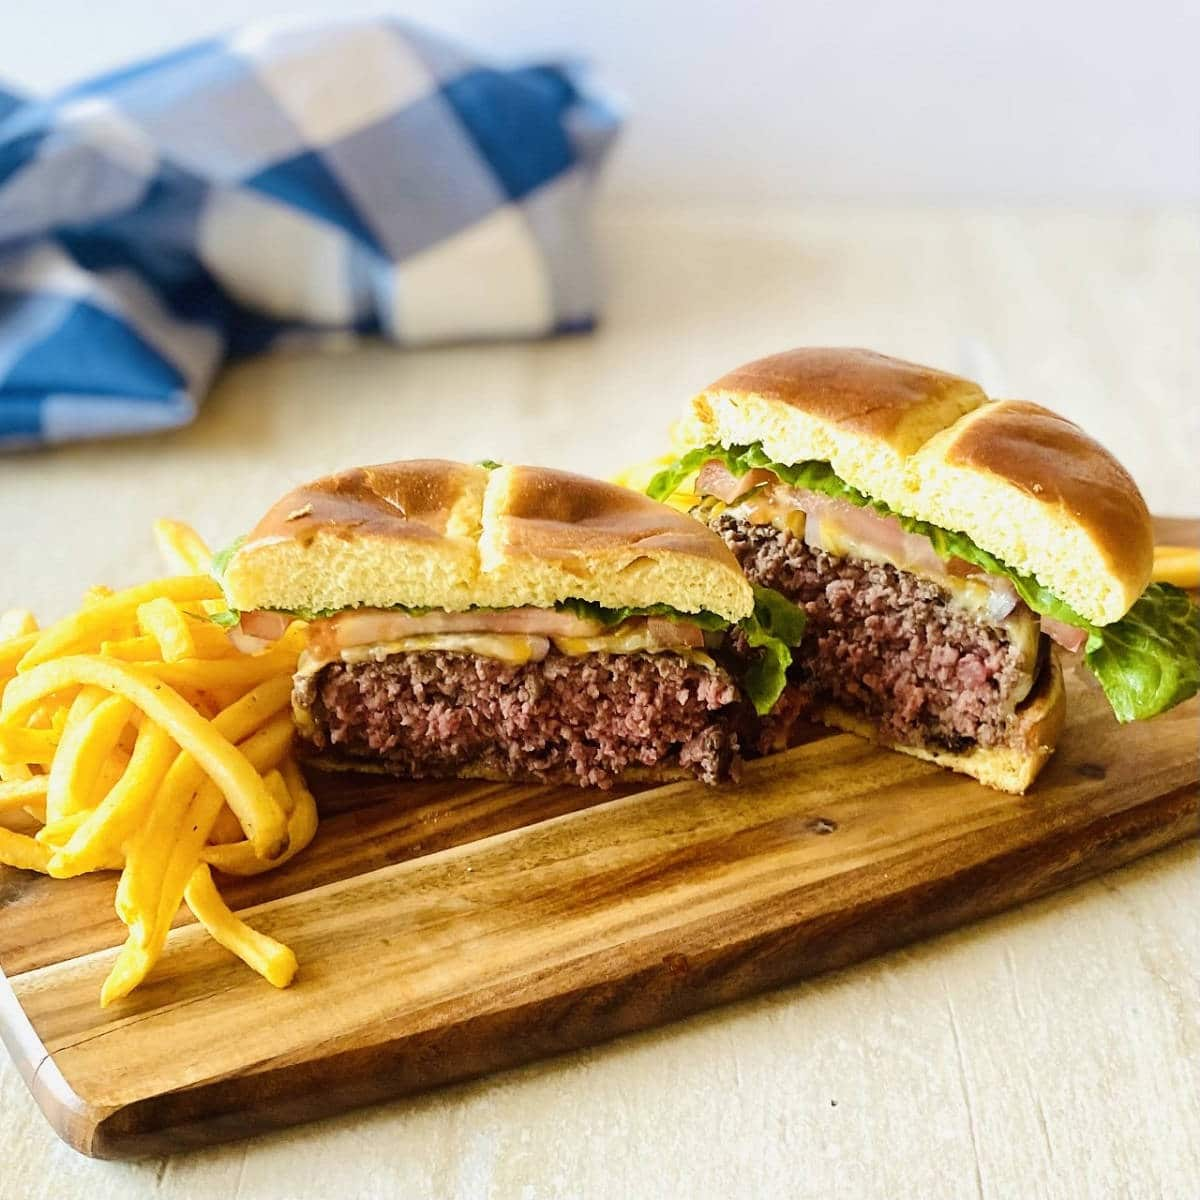 elk burgers cut in half on a wooden platter next to french fries